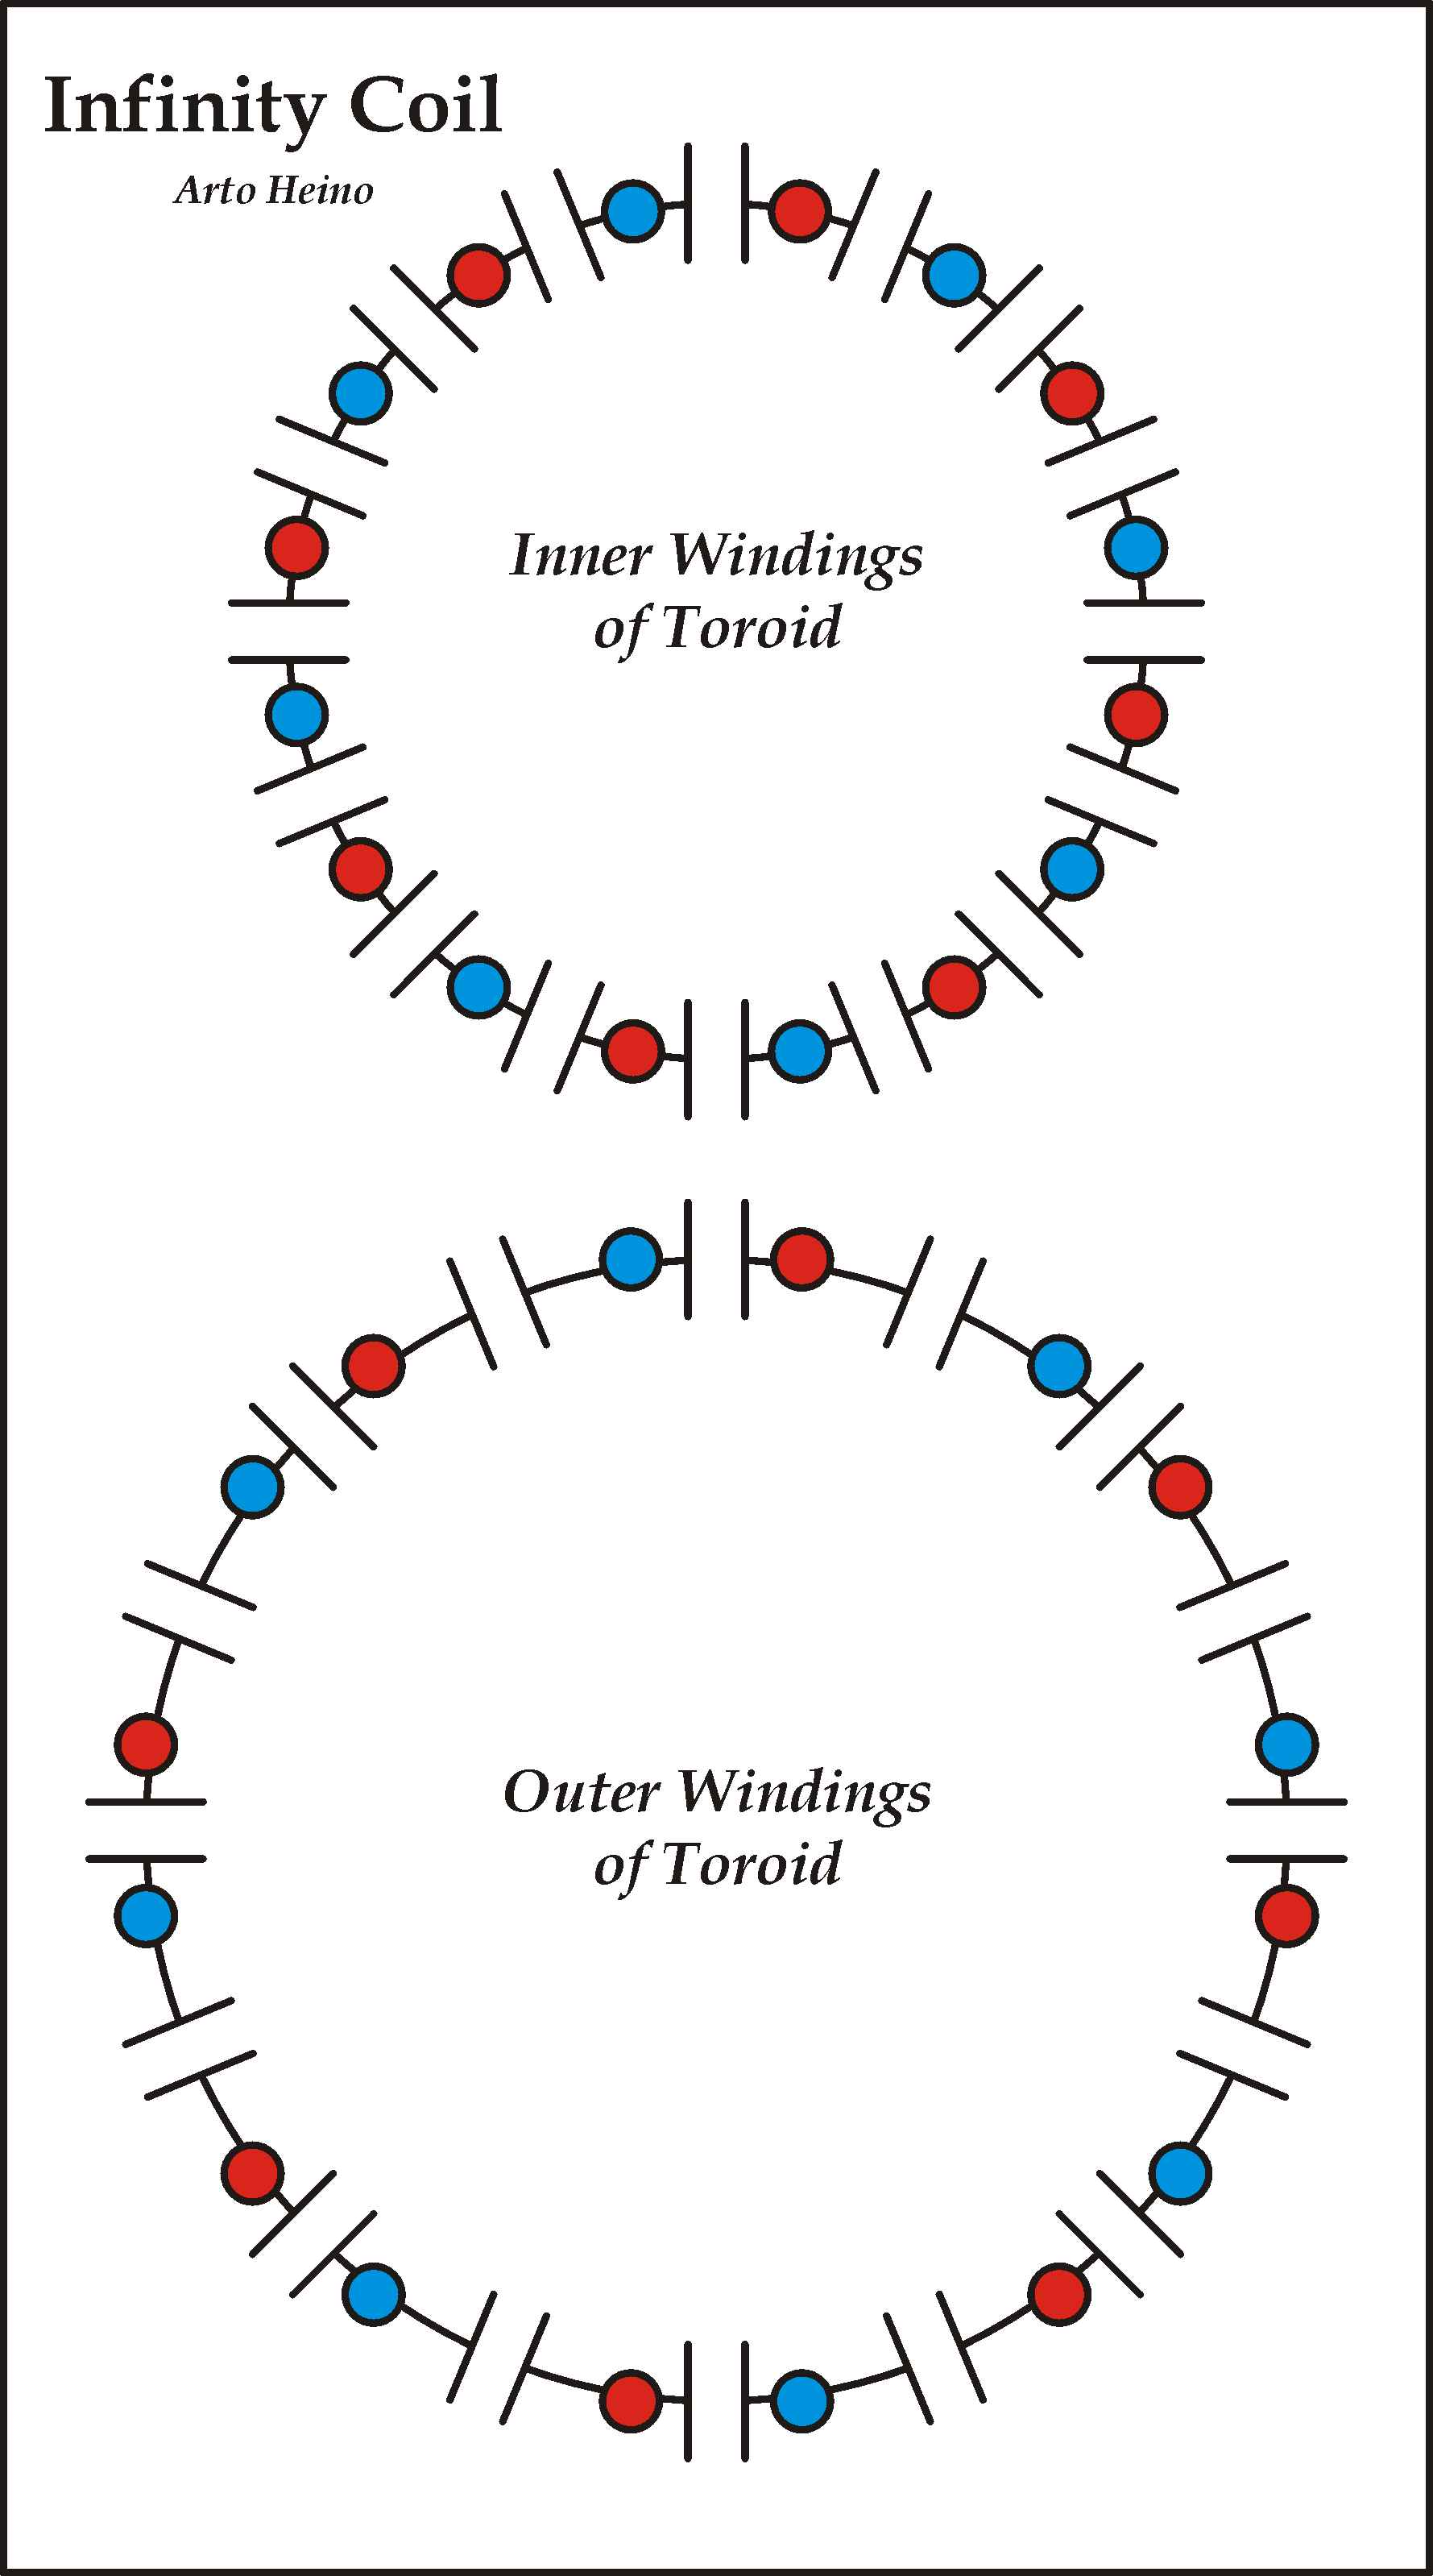 Rodin Coil Circuit Diagram besides Rodin Coil Wiring Diagram besides Tesla Mag Motor Schematics besides 12 24 Series Parallel Switch additionally Rodin Coil Wiring Diagram. on tesla bifilar coil wiring diagrams for